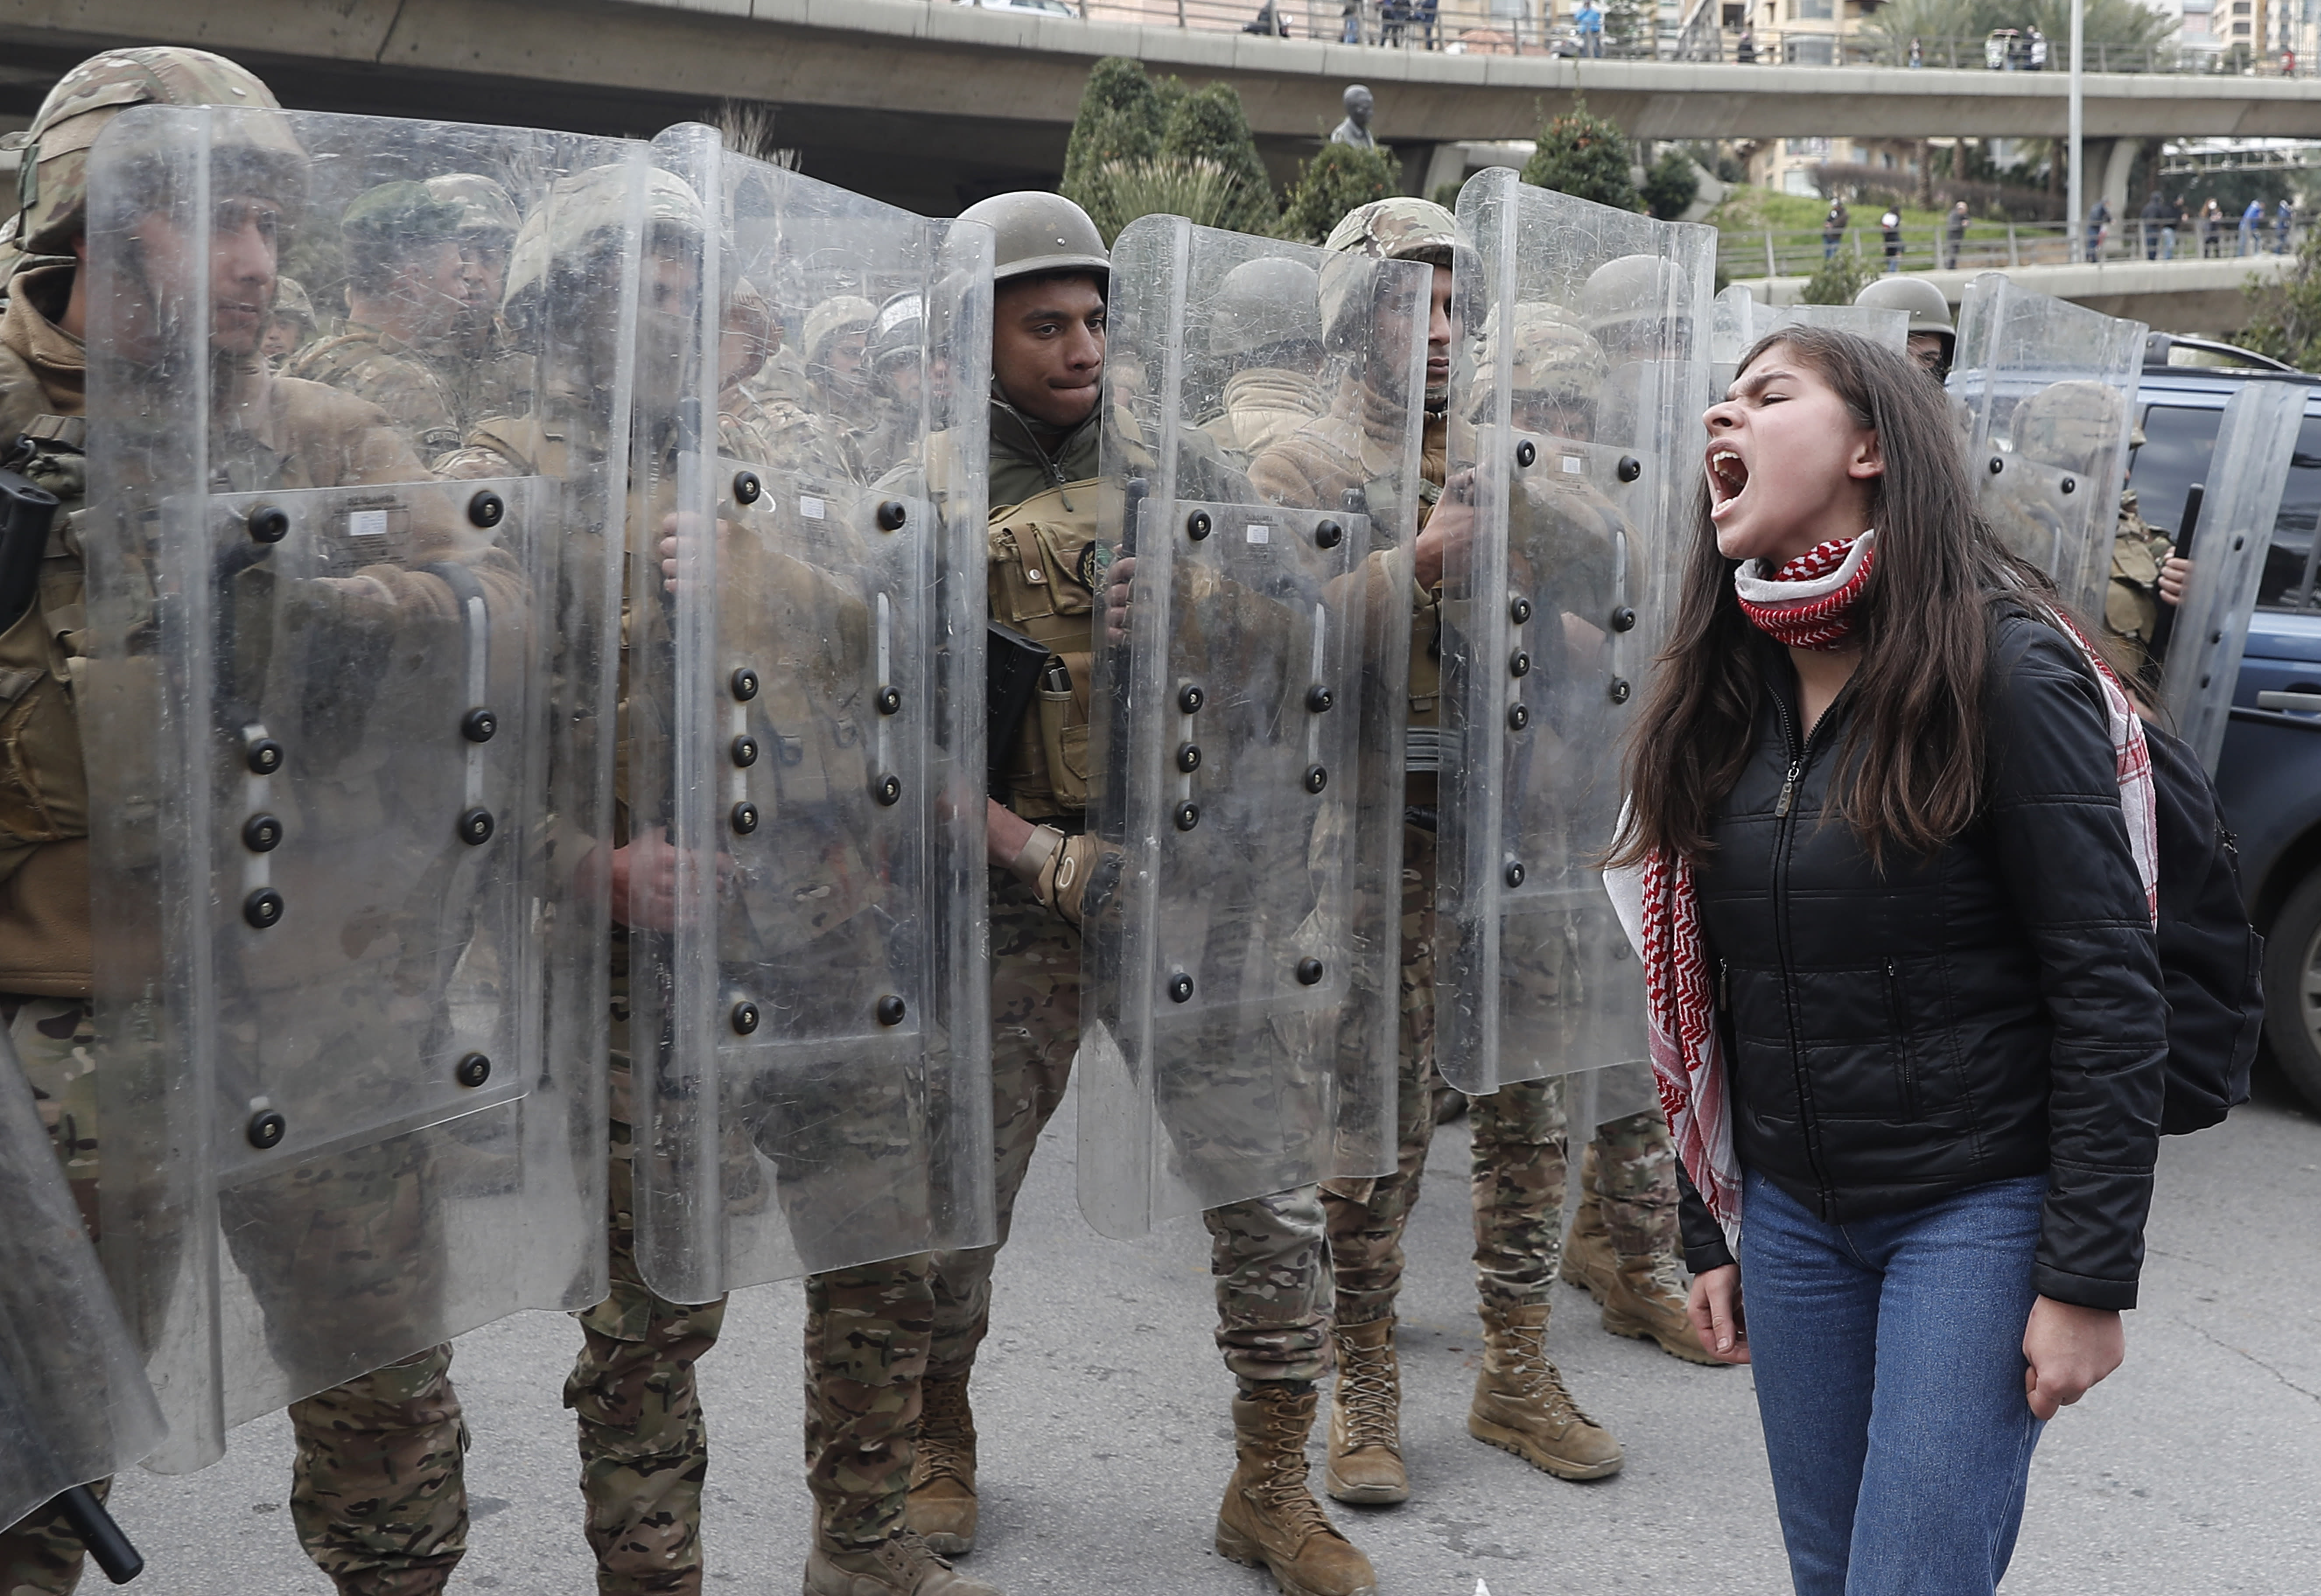 A protester shouts slogans in front of army soldiers during a protest against a parliament session vote of confidence for the new government in downtown Beirut, Lebanon, Tuesday, Feb. 11, 2020. Clashes broke out Tuesday between Lebanese protesters and security forces near the parliament building in central Beirut, where the new Cabinet is scheduled to submit its policy statement ahead of a vote of confidence. (AP Photo/Hussein Malla)